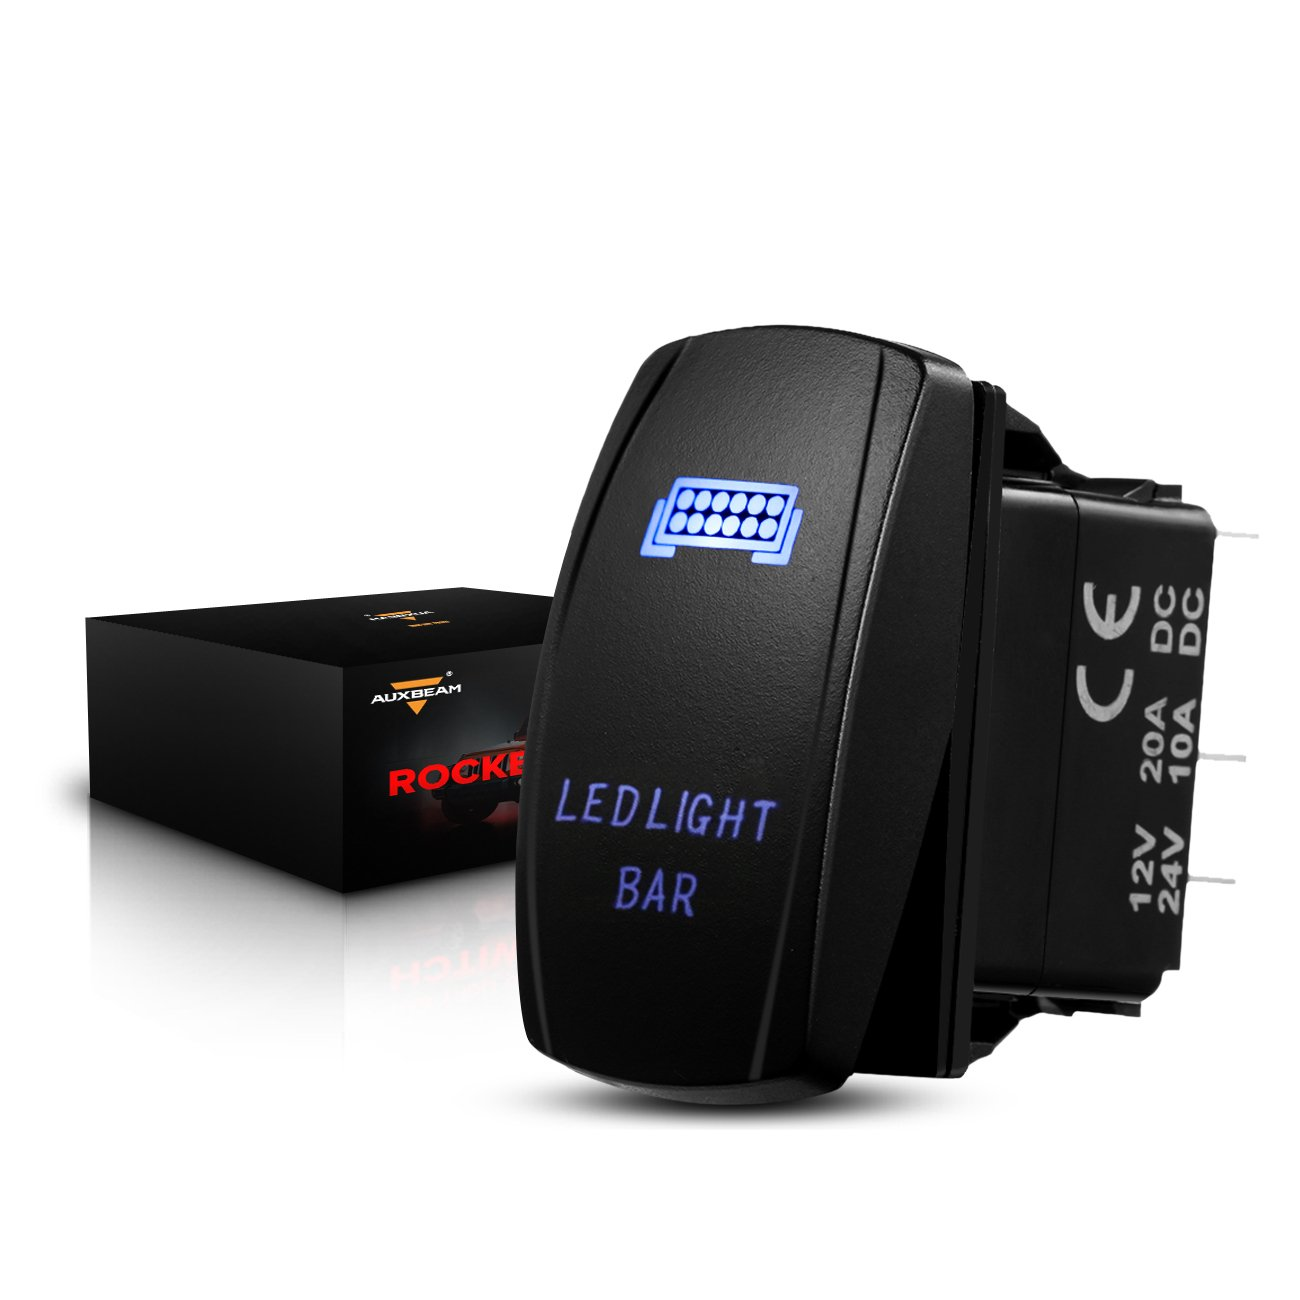 Auxbeam LED Light Bar Rocker Switch with Switching Lines for 12 / 24V Cars, Motorcycles, Buses, Boats, RVs, Trailers by Auxbeam (Image #1)